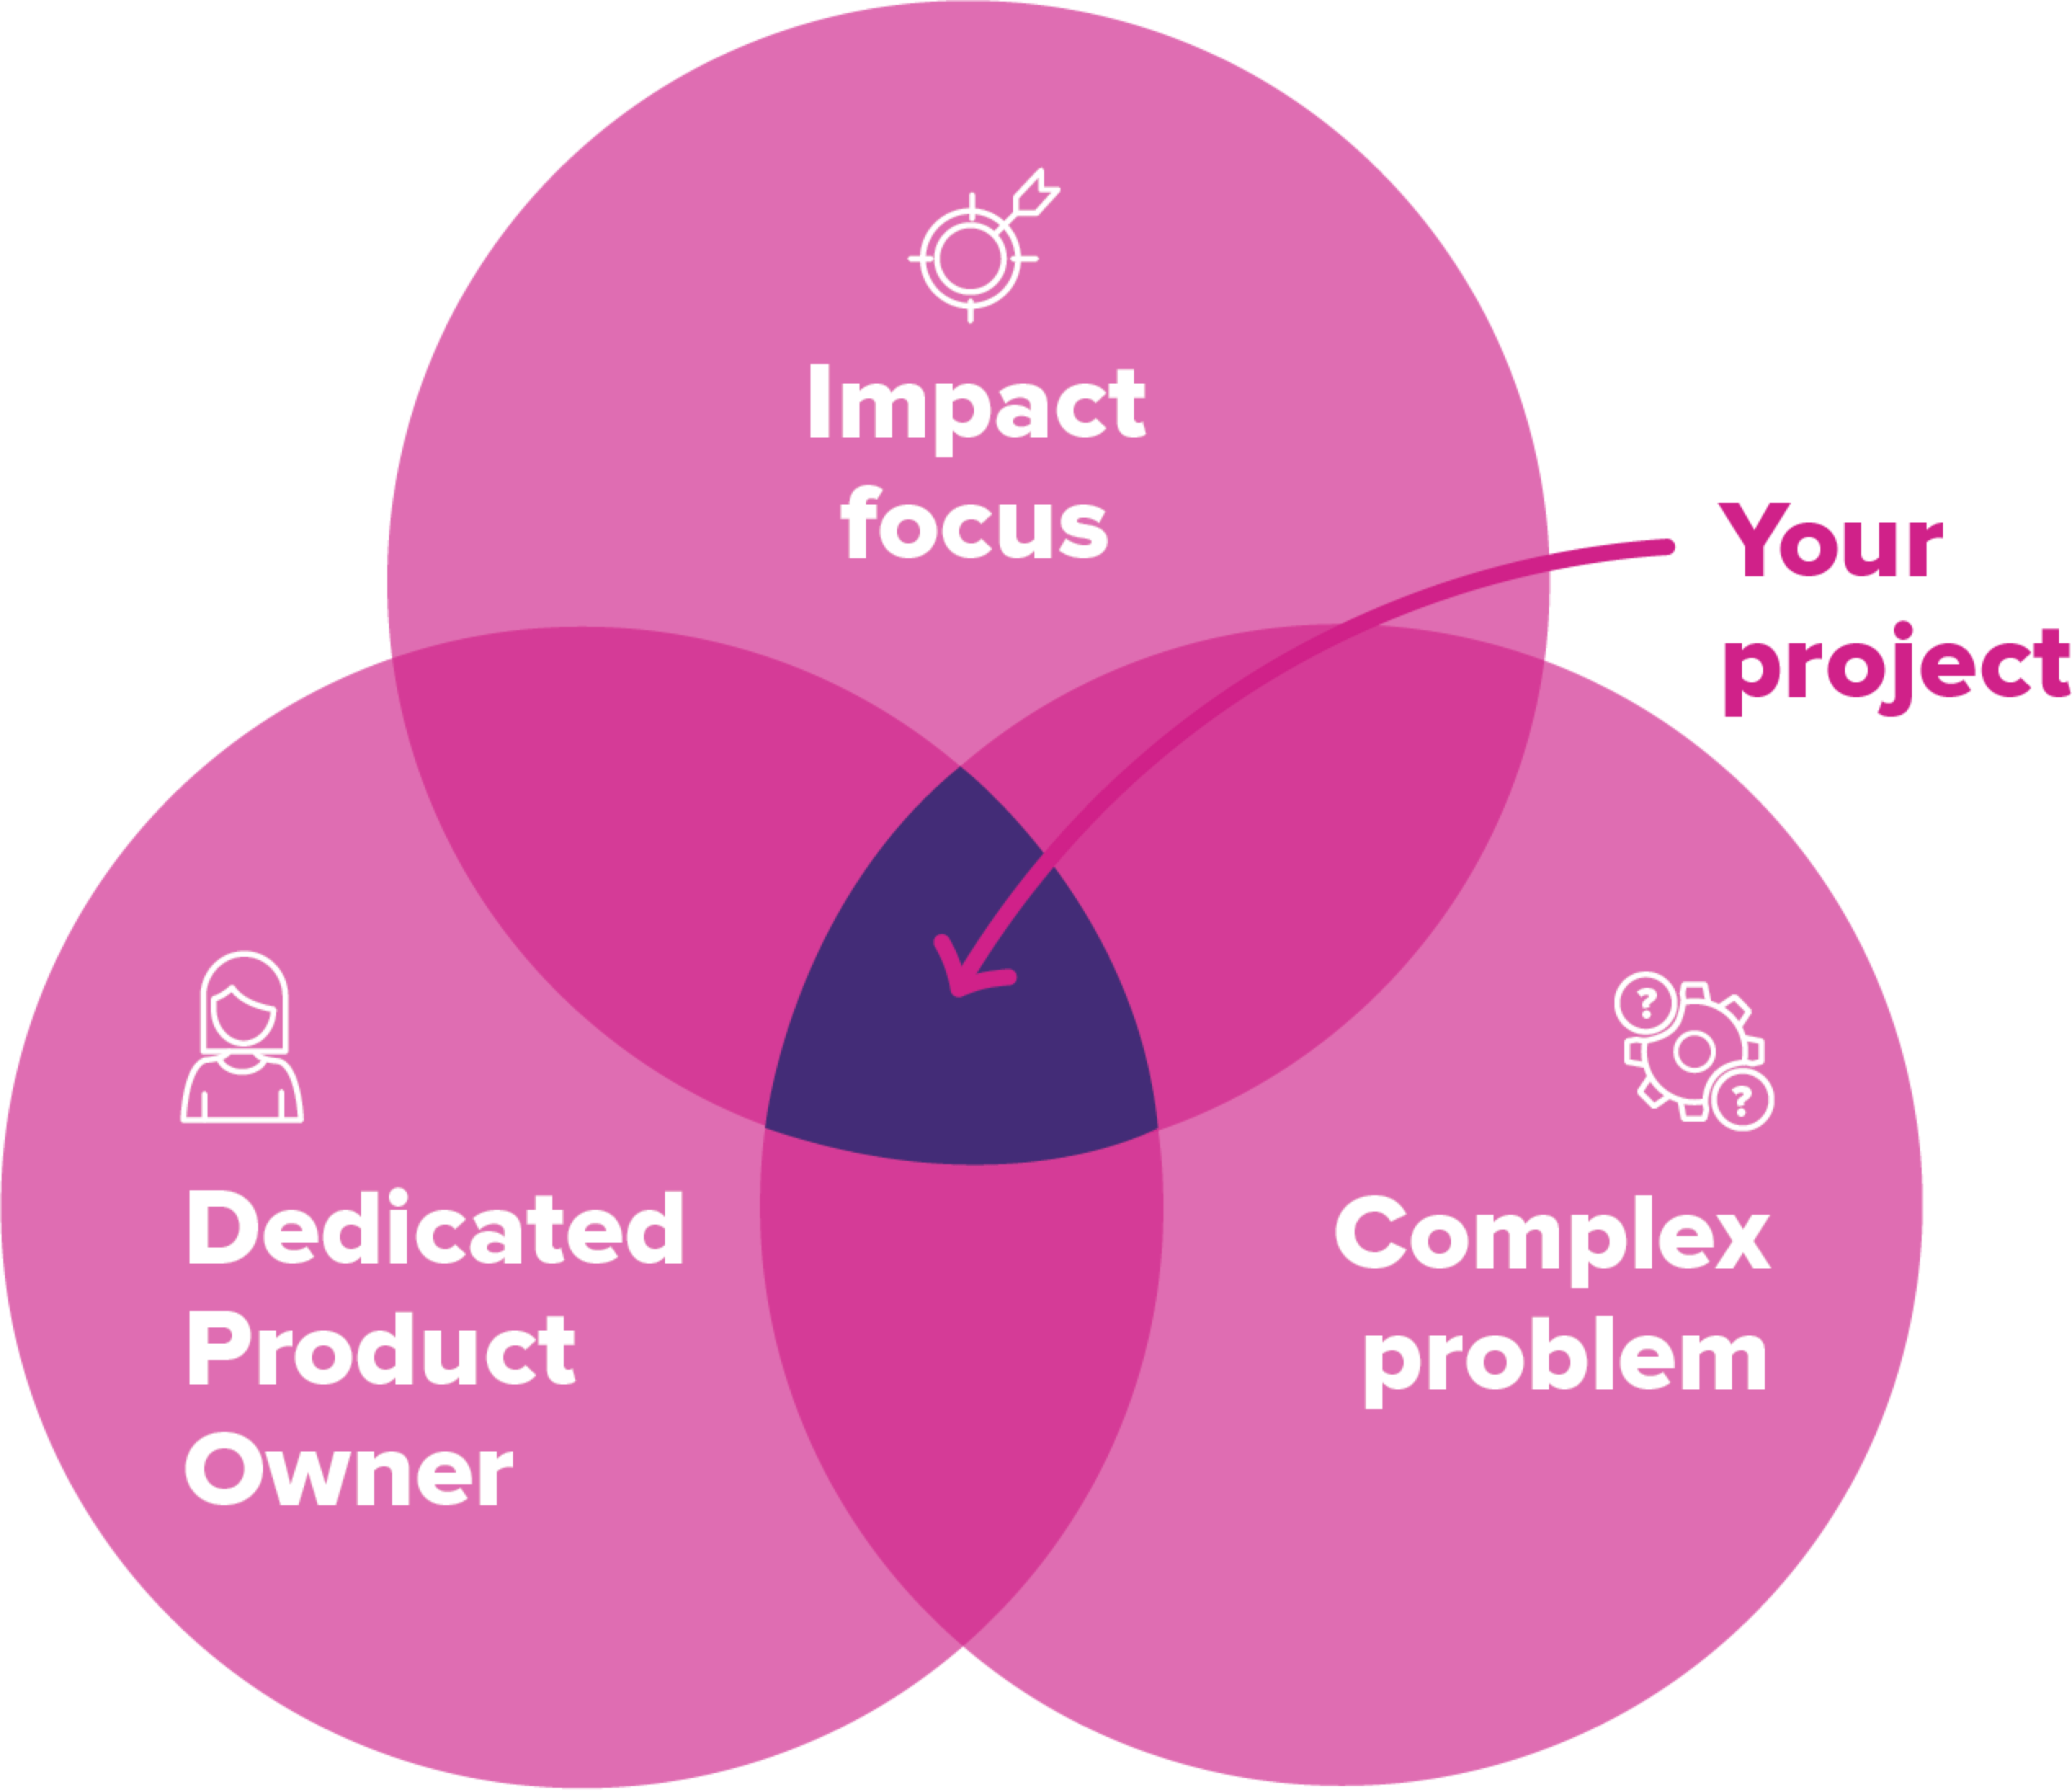 Venn diagram showing that Boost's ideal project has an impact focus, a dedicated product owner and tackles a complex problem.